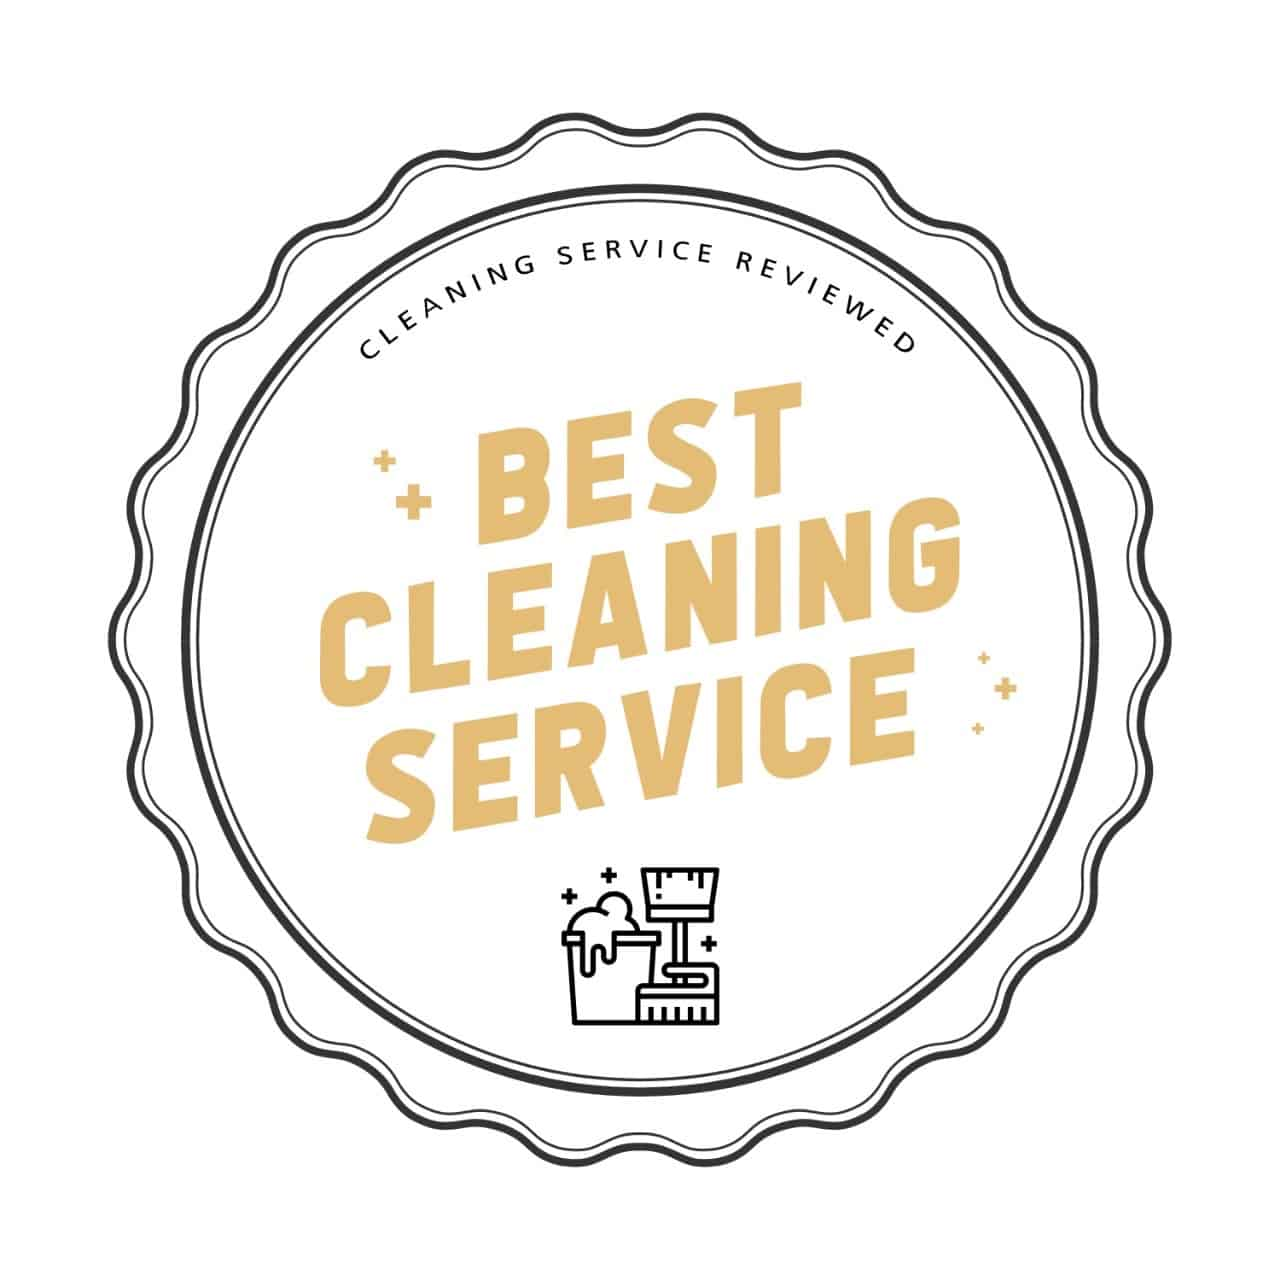 Atlanta best cleaning service badge